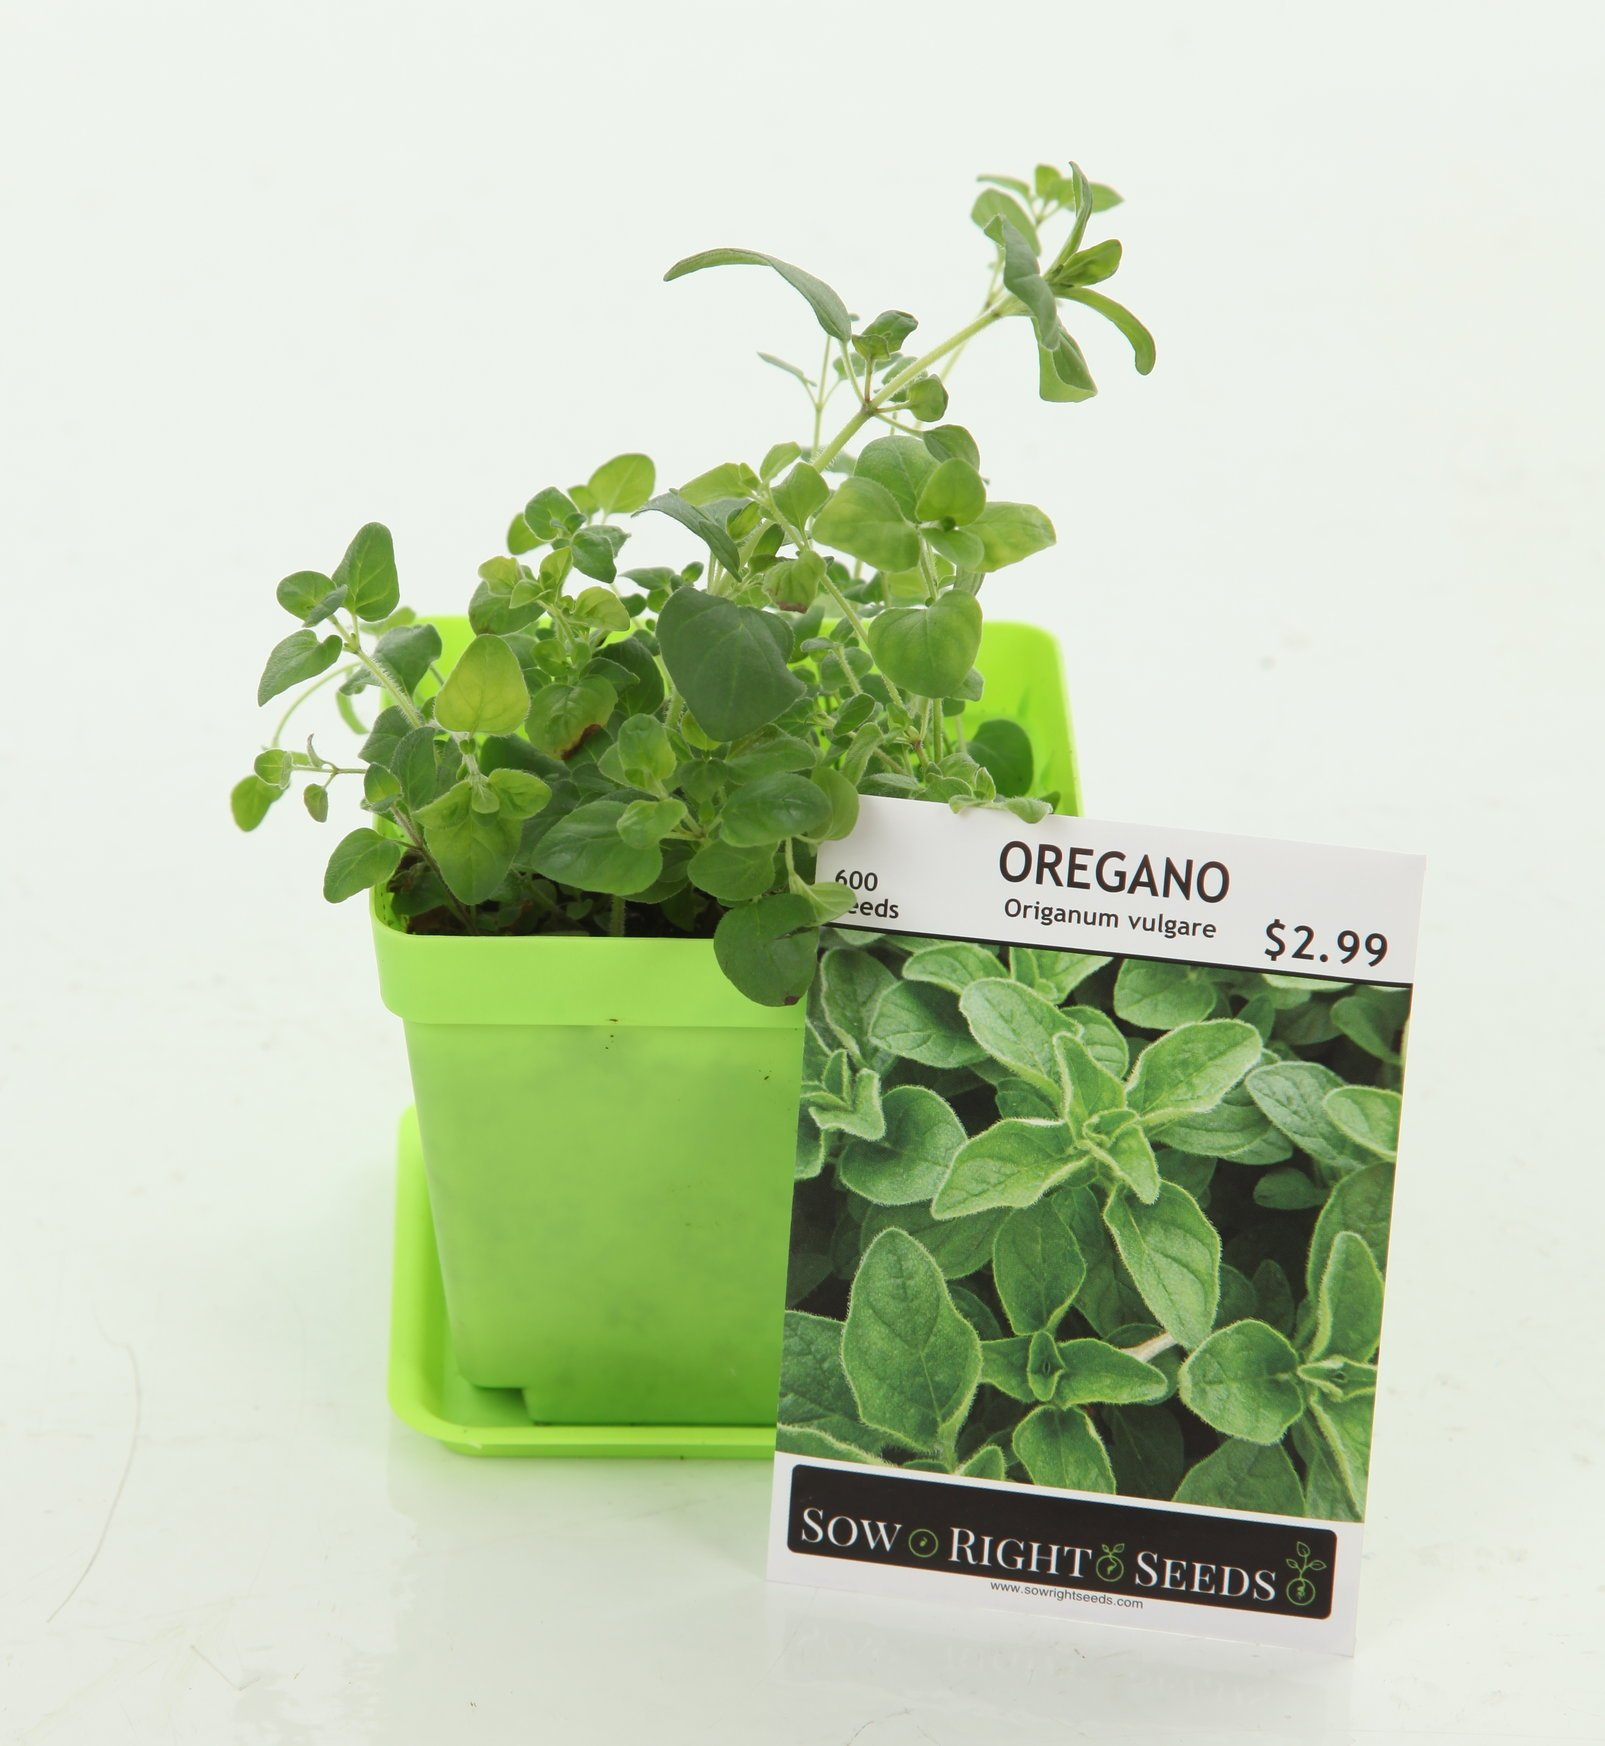 Indoor Herb Garden Starter Kit - Full Size Seed Packets of Basil, Chives, Cilantro, Oregano & Parsley - Everything You Need to Grow Herbs in Your Kitchen - Soil, Reusable Pots, Trays, Plant Markers, by Right Hardware (Image #5)